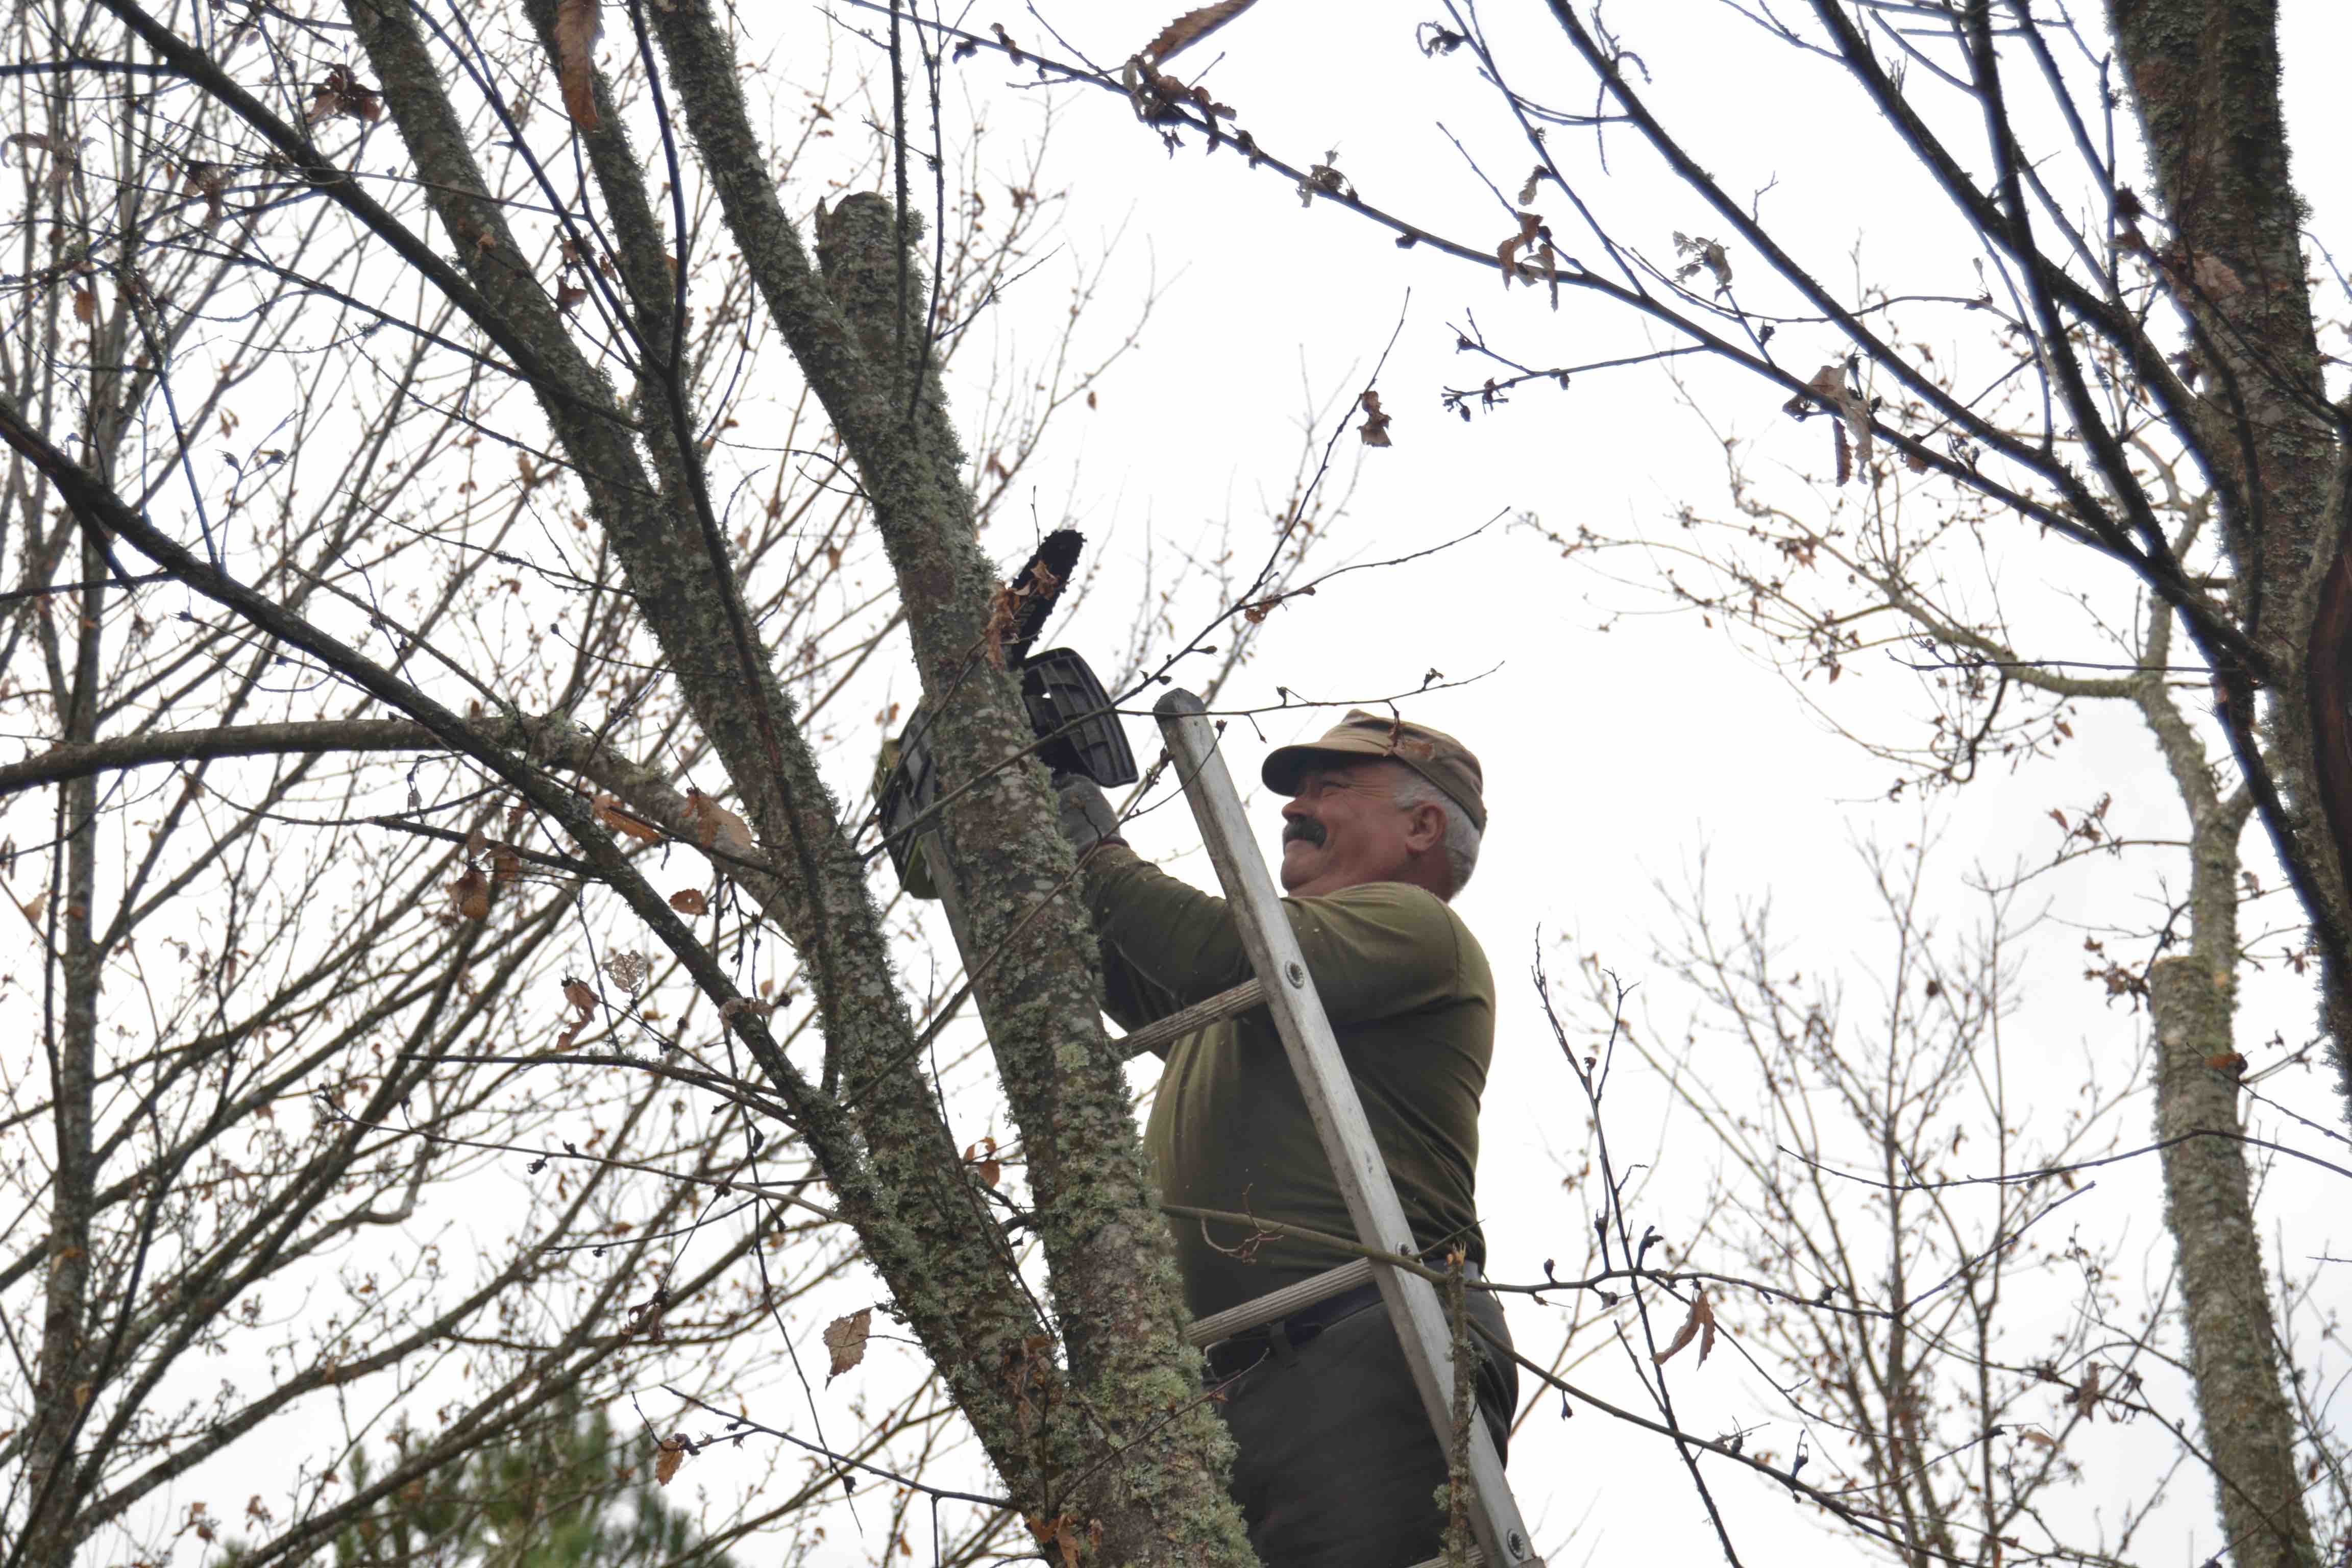 Pruning the chestnut forest